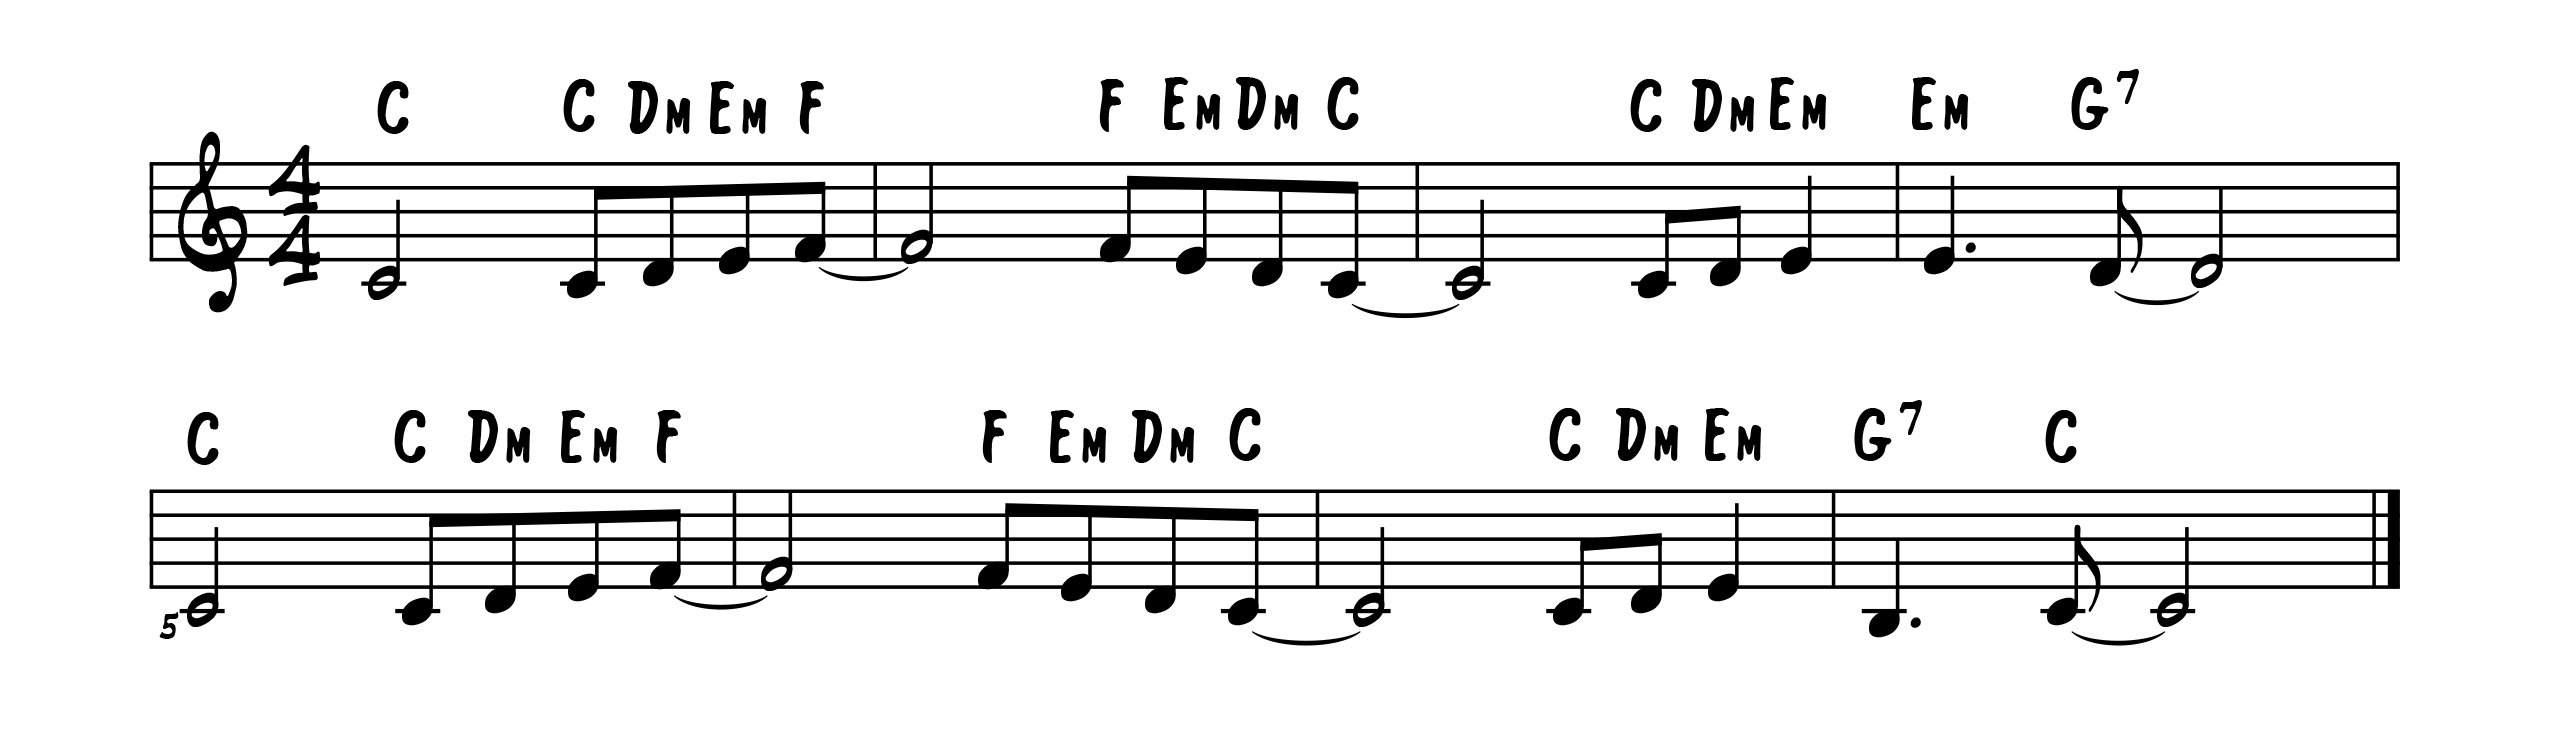 Lean On Me opening melody/chords